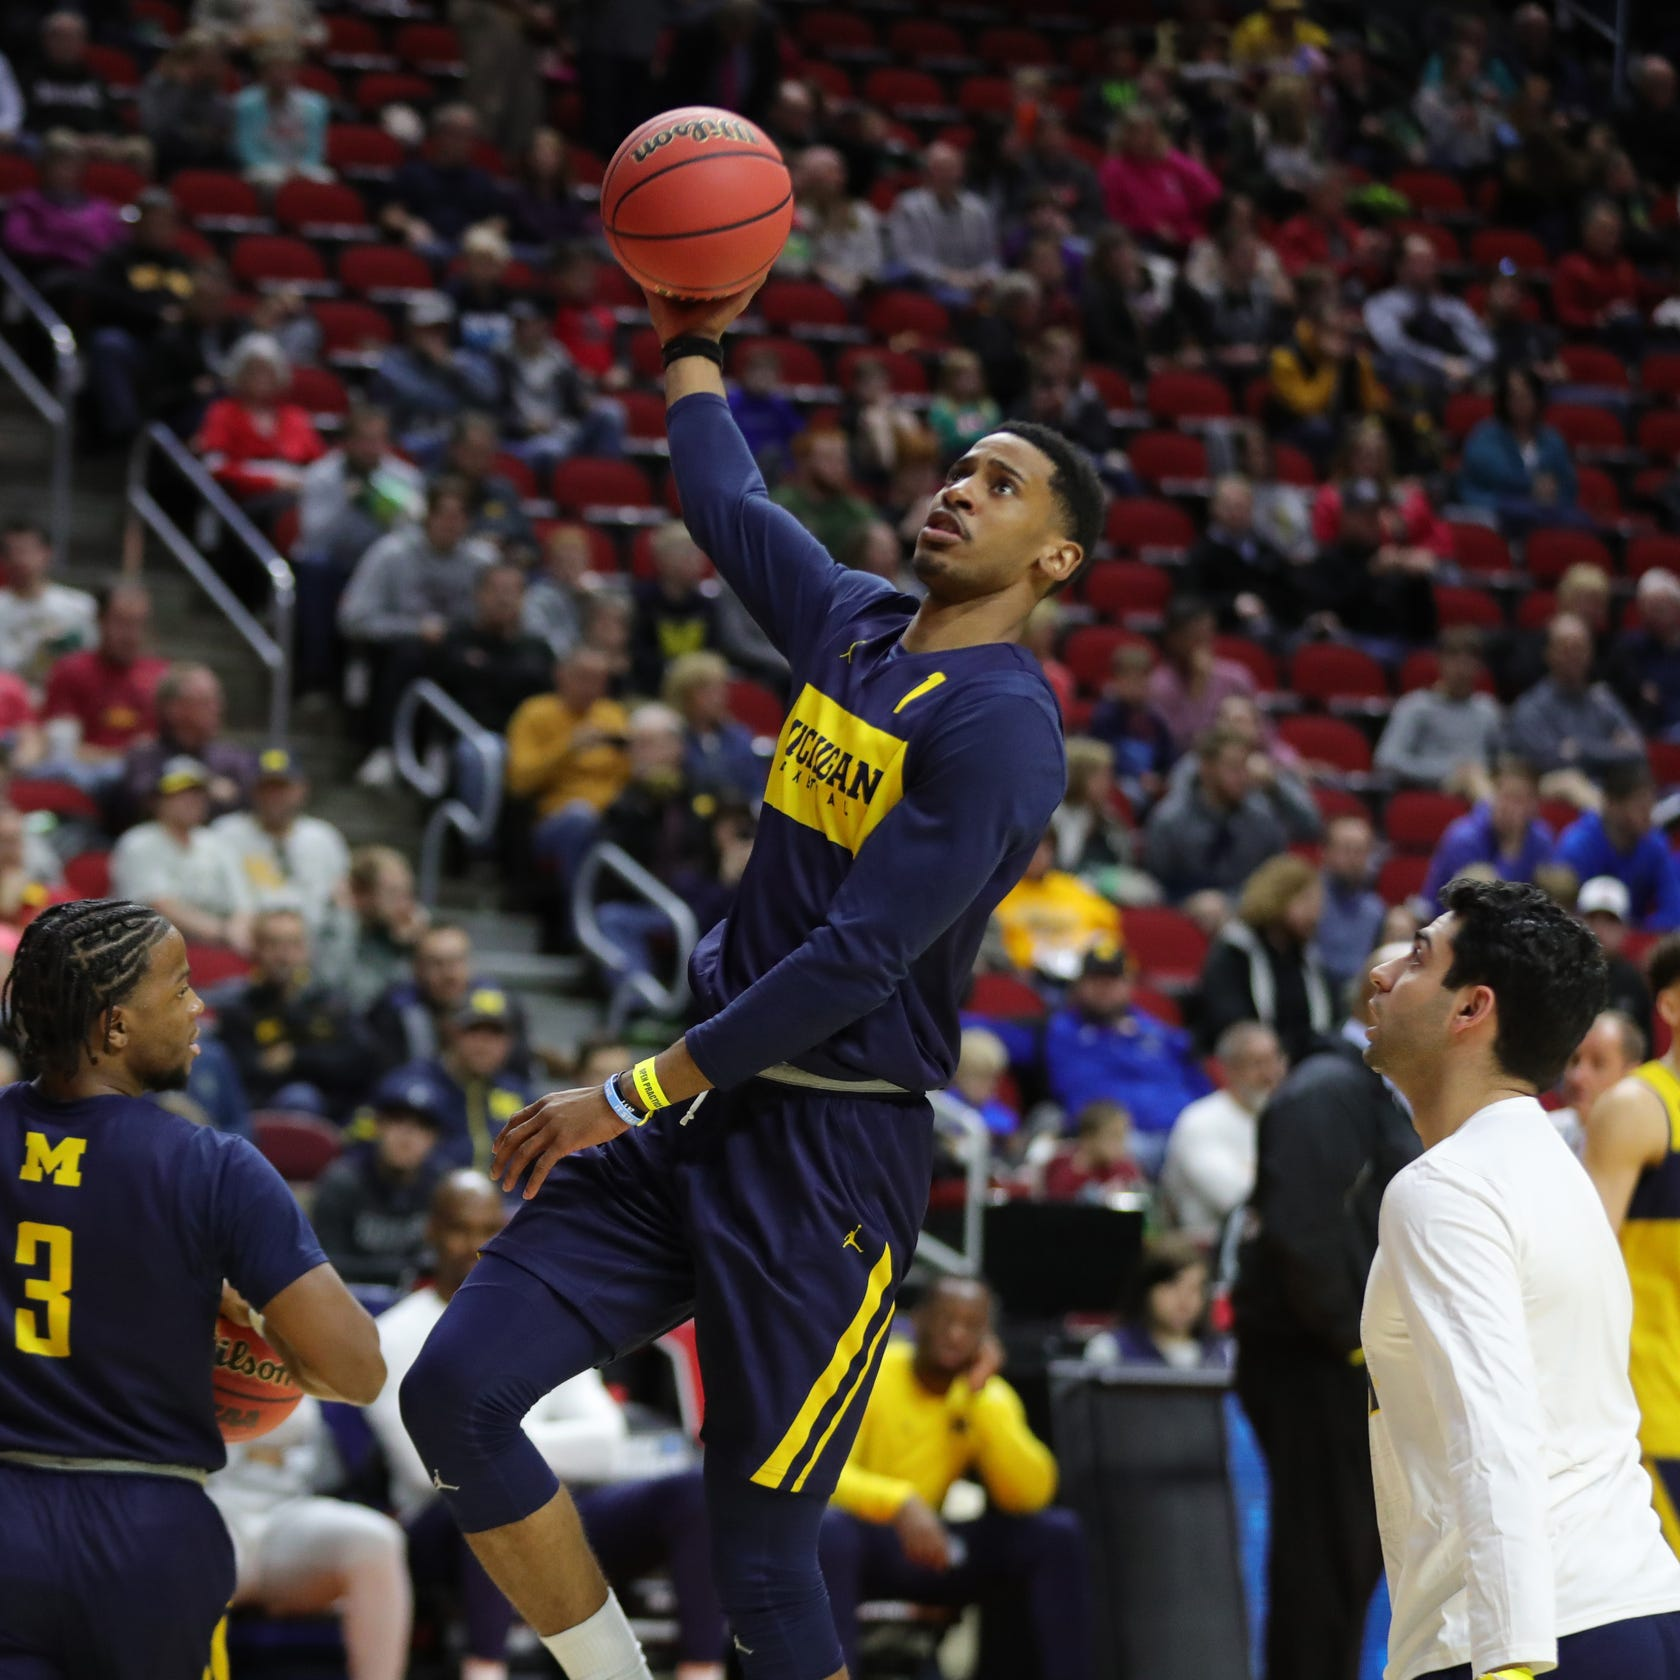 Michigan basketball done thinking about MSU, ready to redefine season